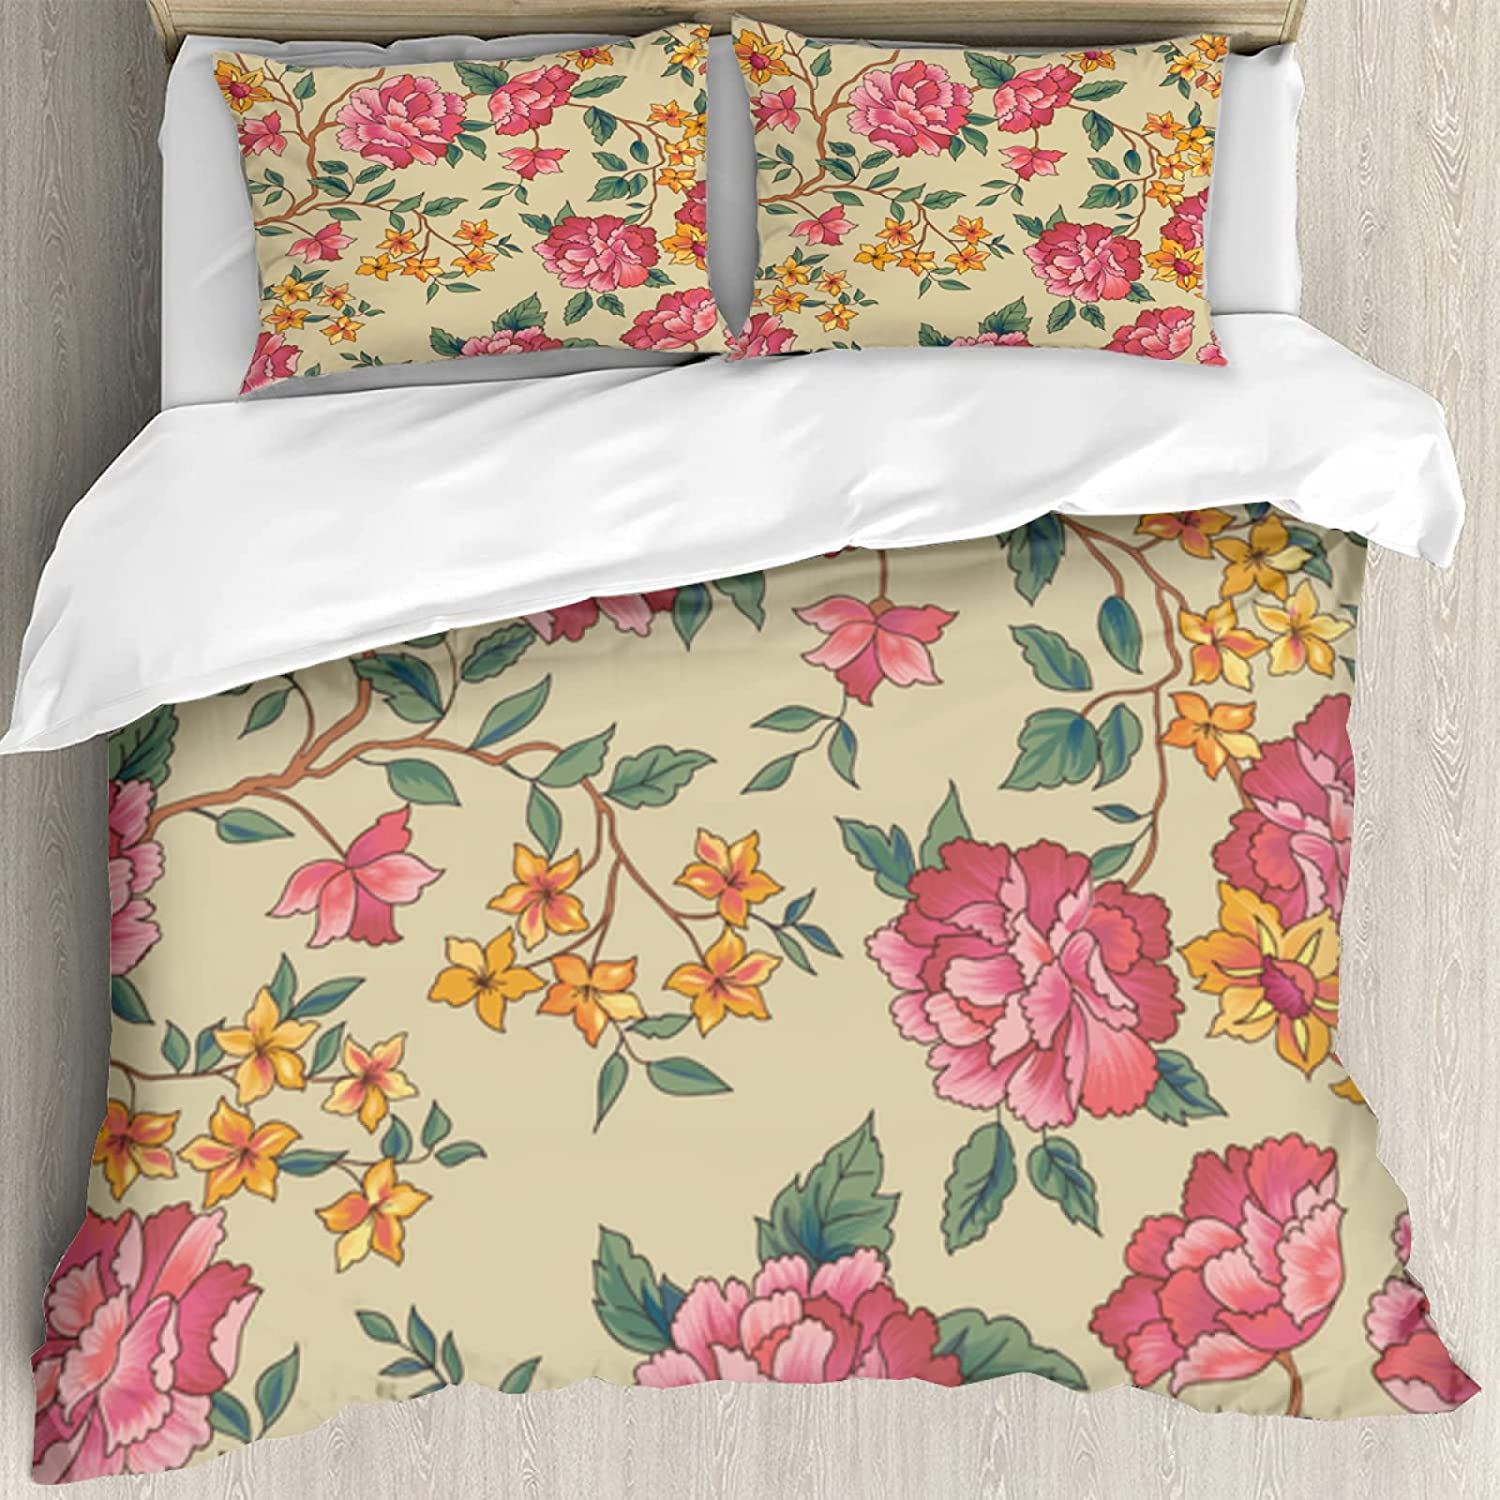 Duvet Cover Set 60x80inch,Floral Seamless Pattern Flower Rose Background Flourish Ornamental Garden,Decorative 3 Piece Bedding Set with 2 Pillow Shams, Twin/Full/Queen/King Size LTH